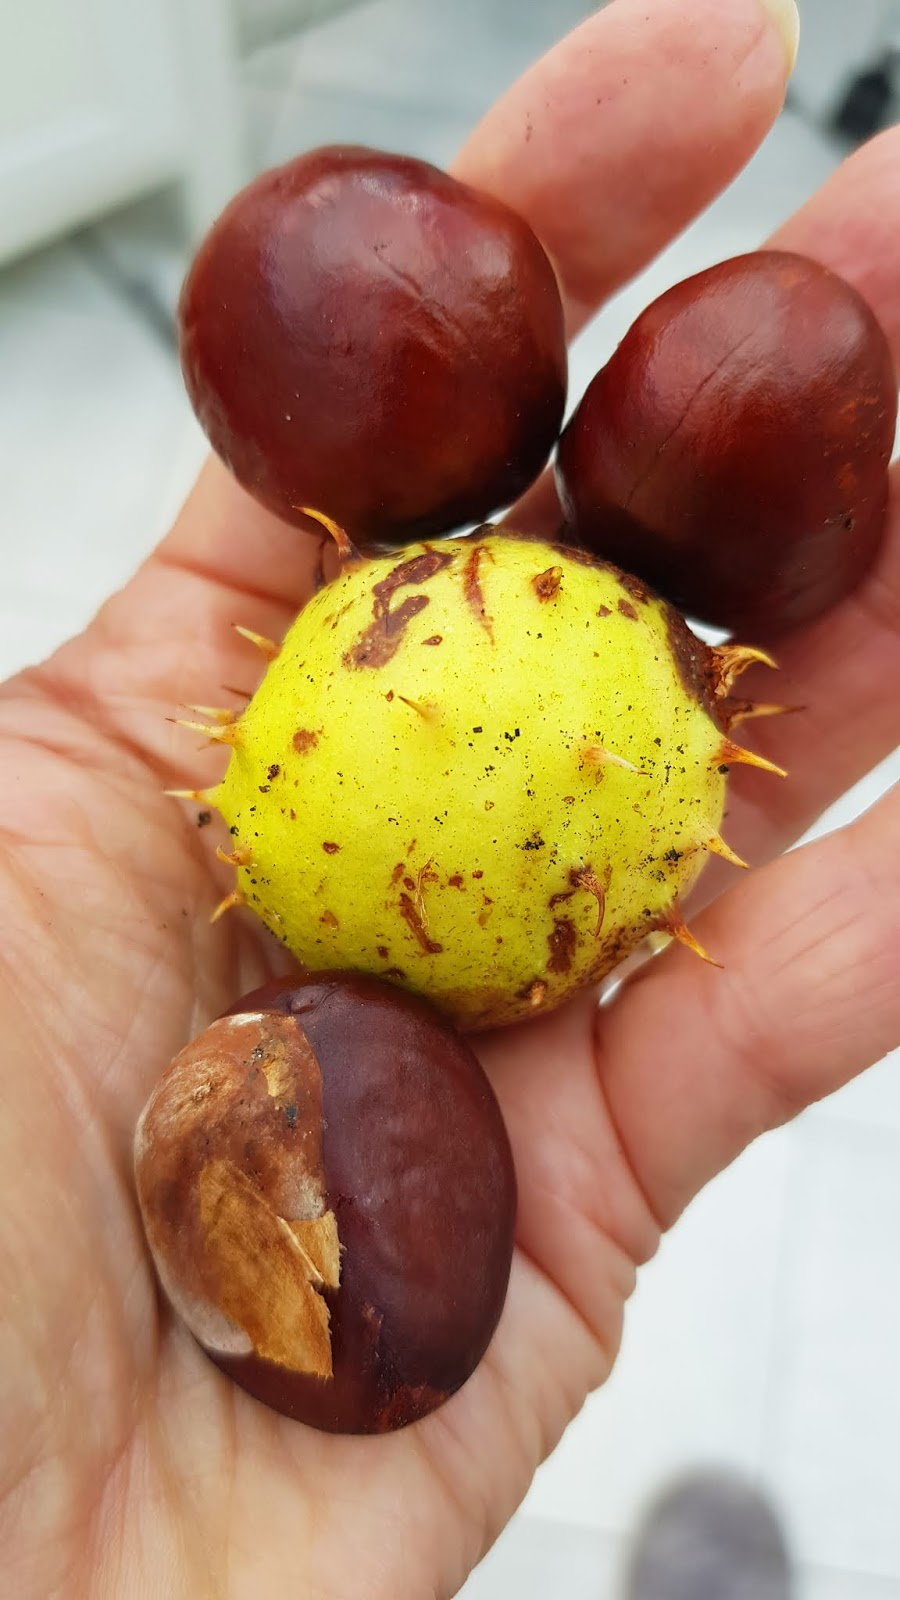 A handful of conkers from a horse chestnut tree